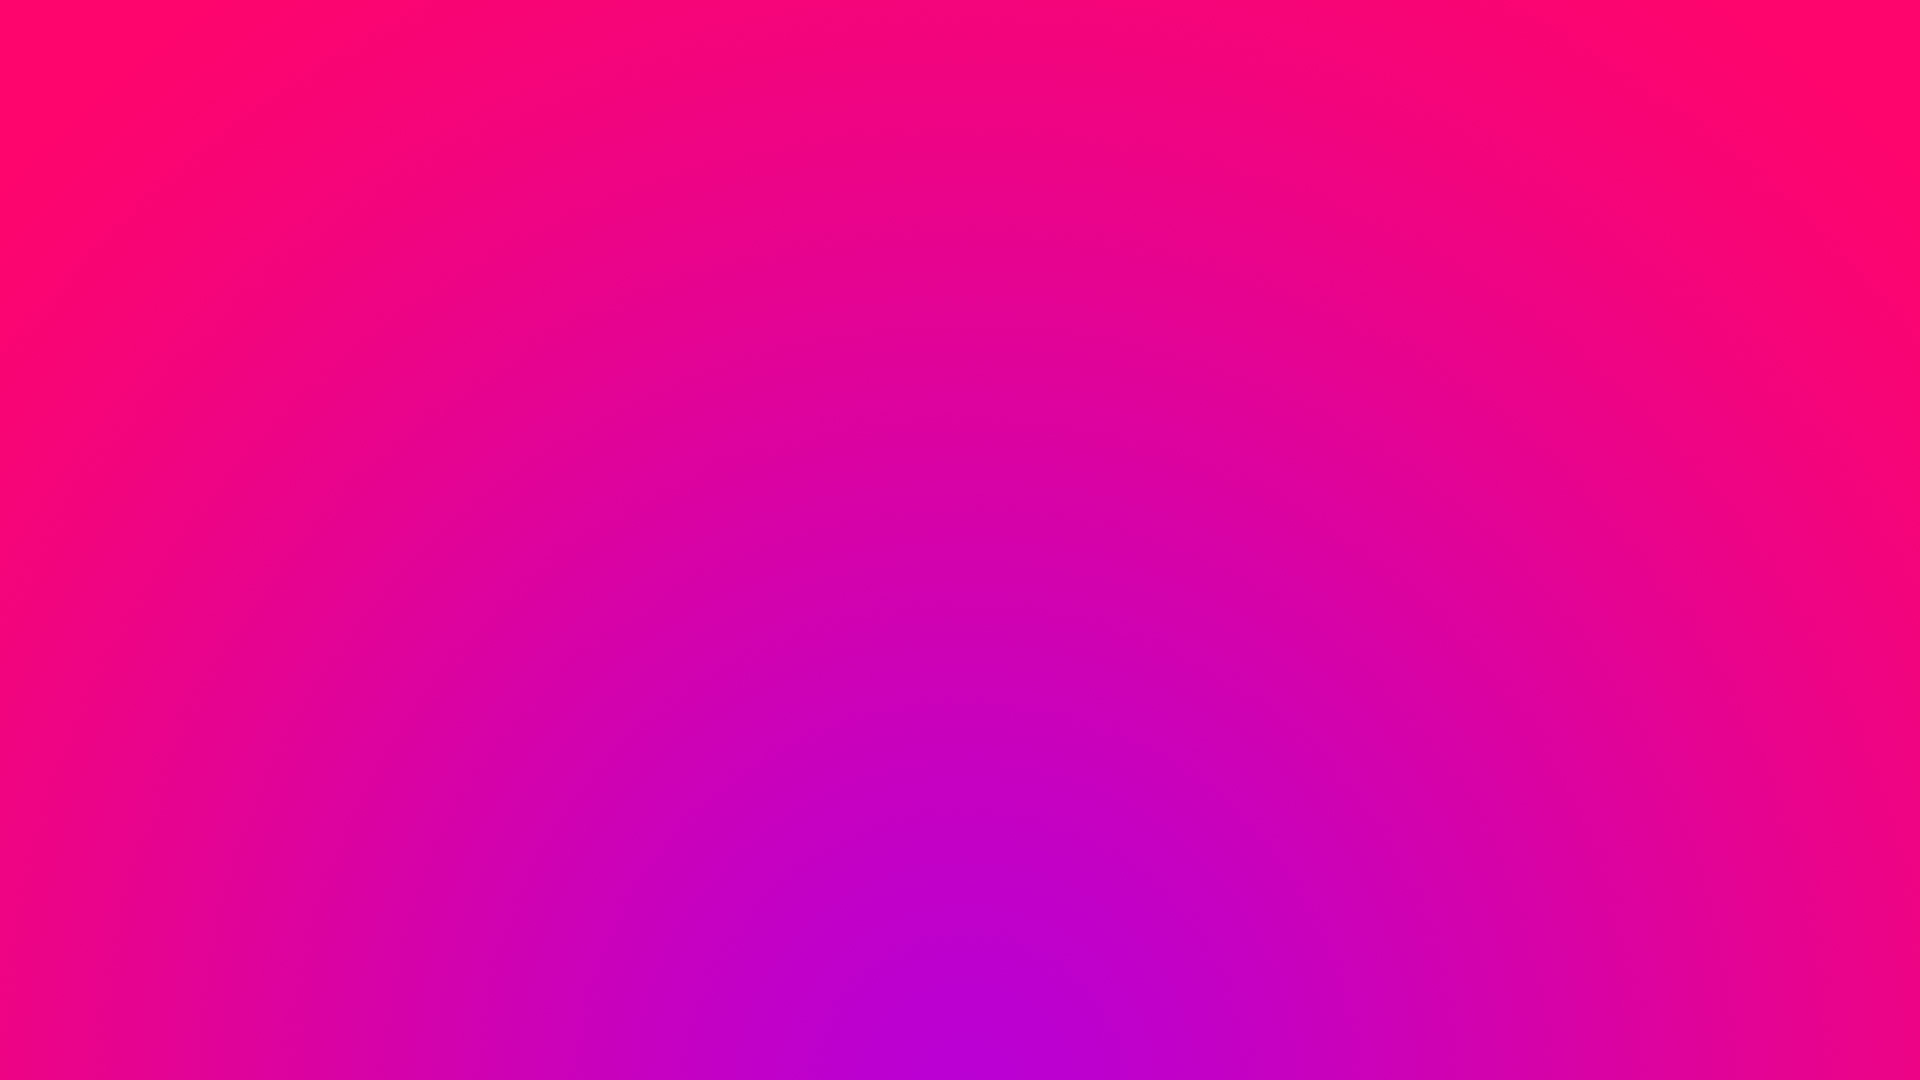 Pink-Presentation-Gradient-Background